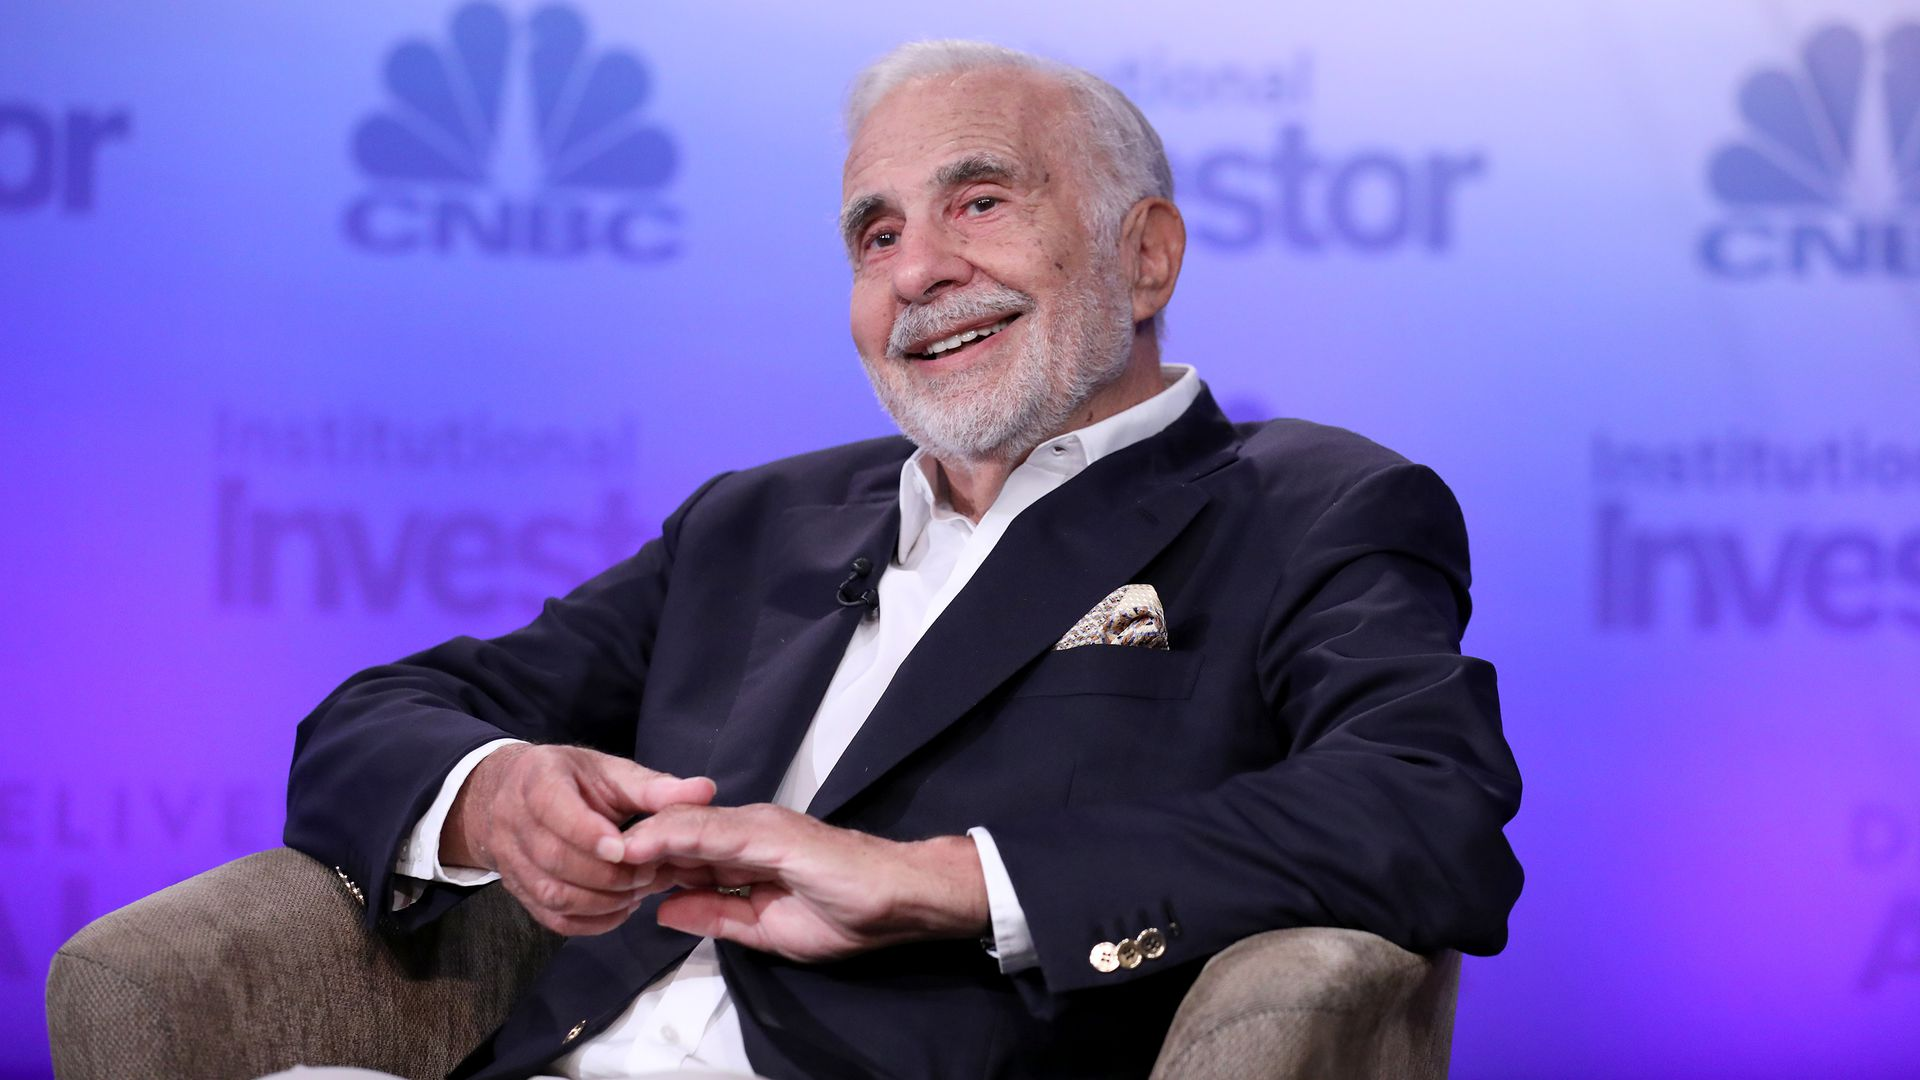 Carl Icahn sitting in a chair smiling on stage at an event